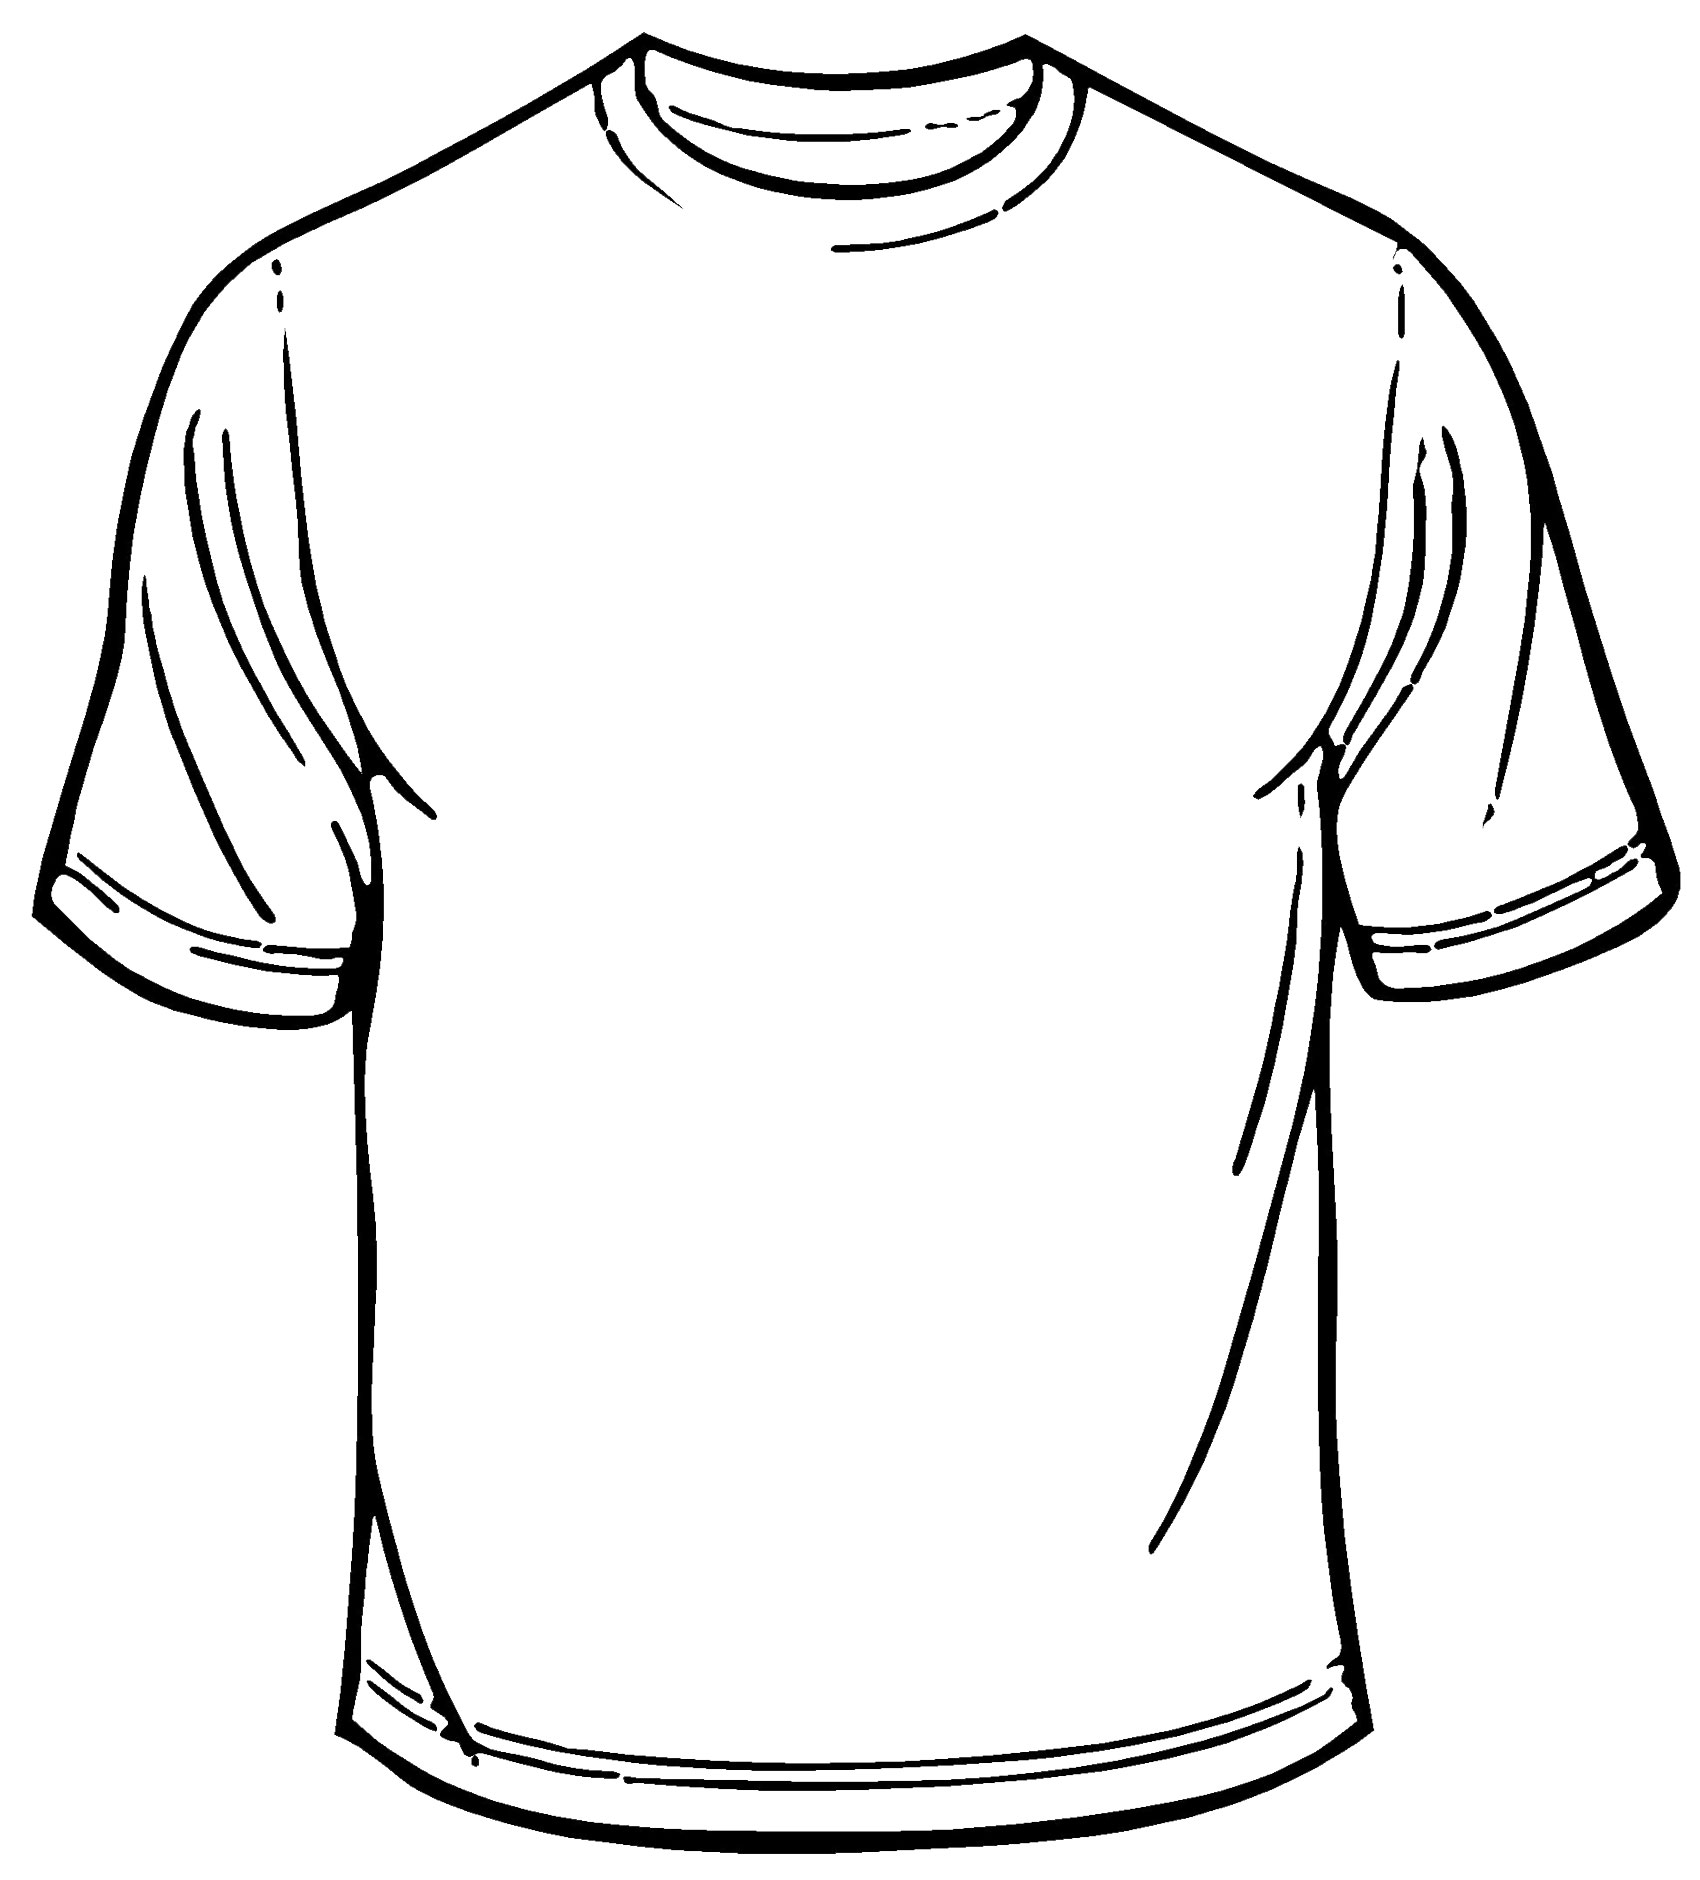 Trends For > Blank T Shirt Template Png - Cliparts.co